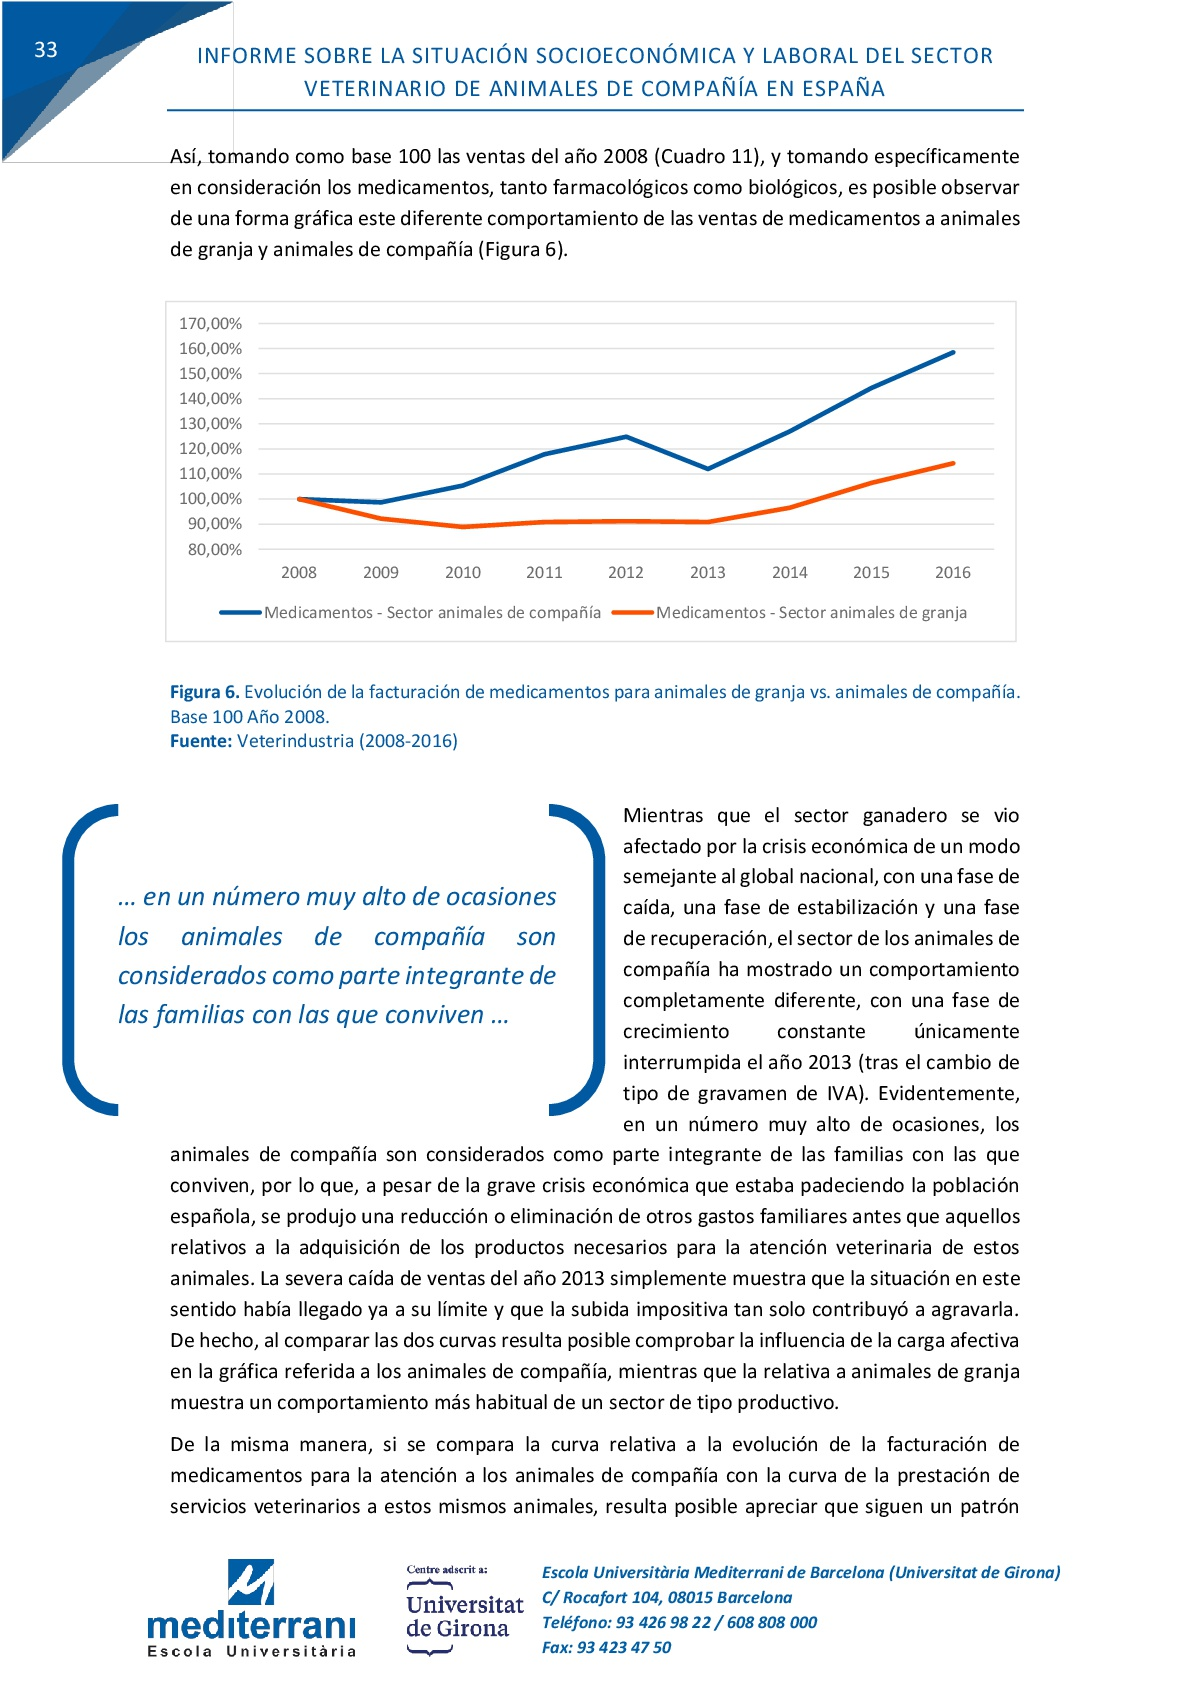 Informe-Veterinario-2017-+-informe-legal-2015-(3)-038